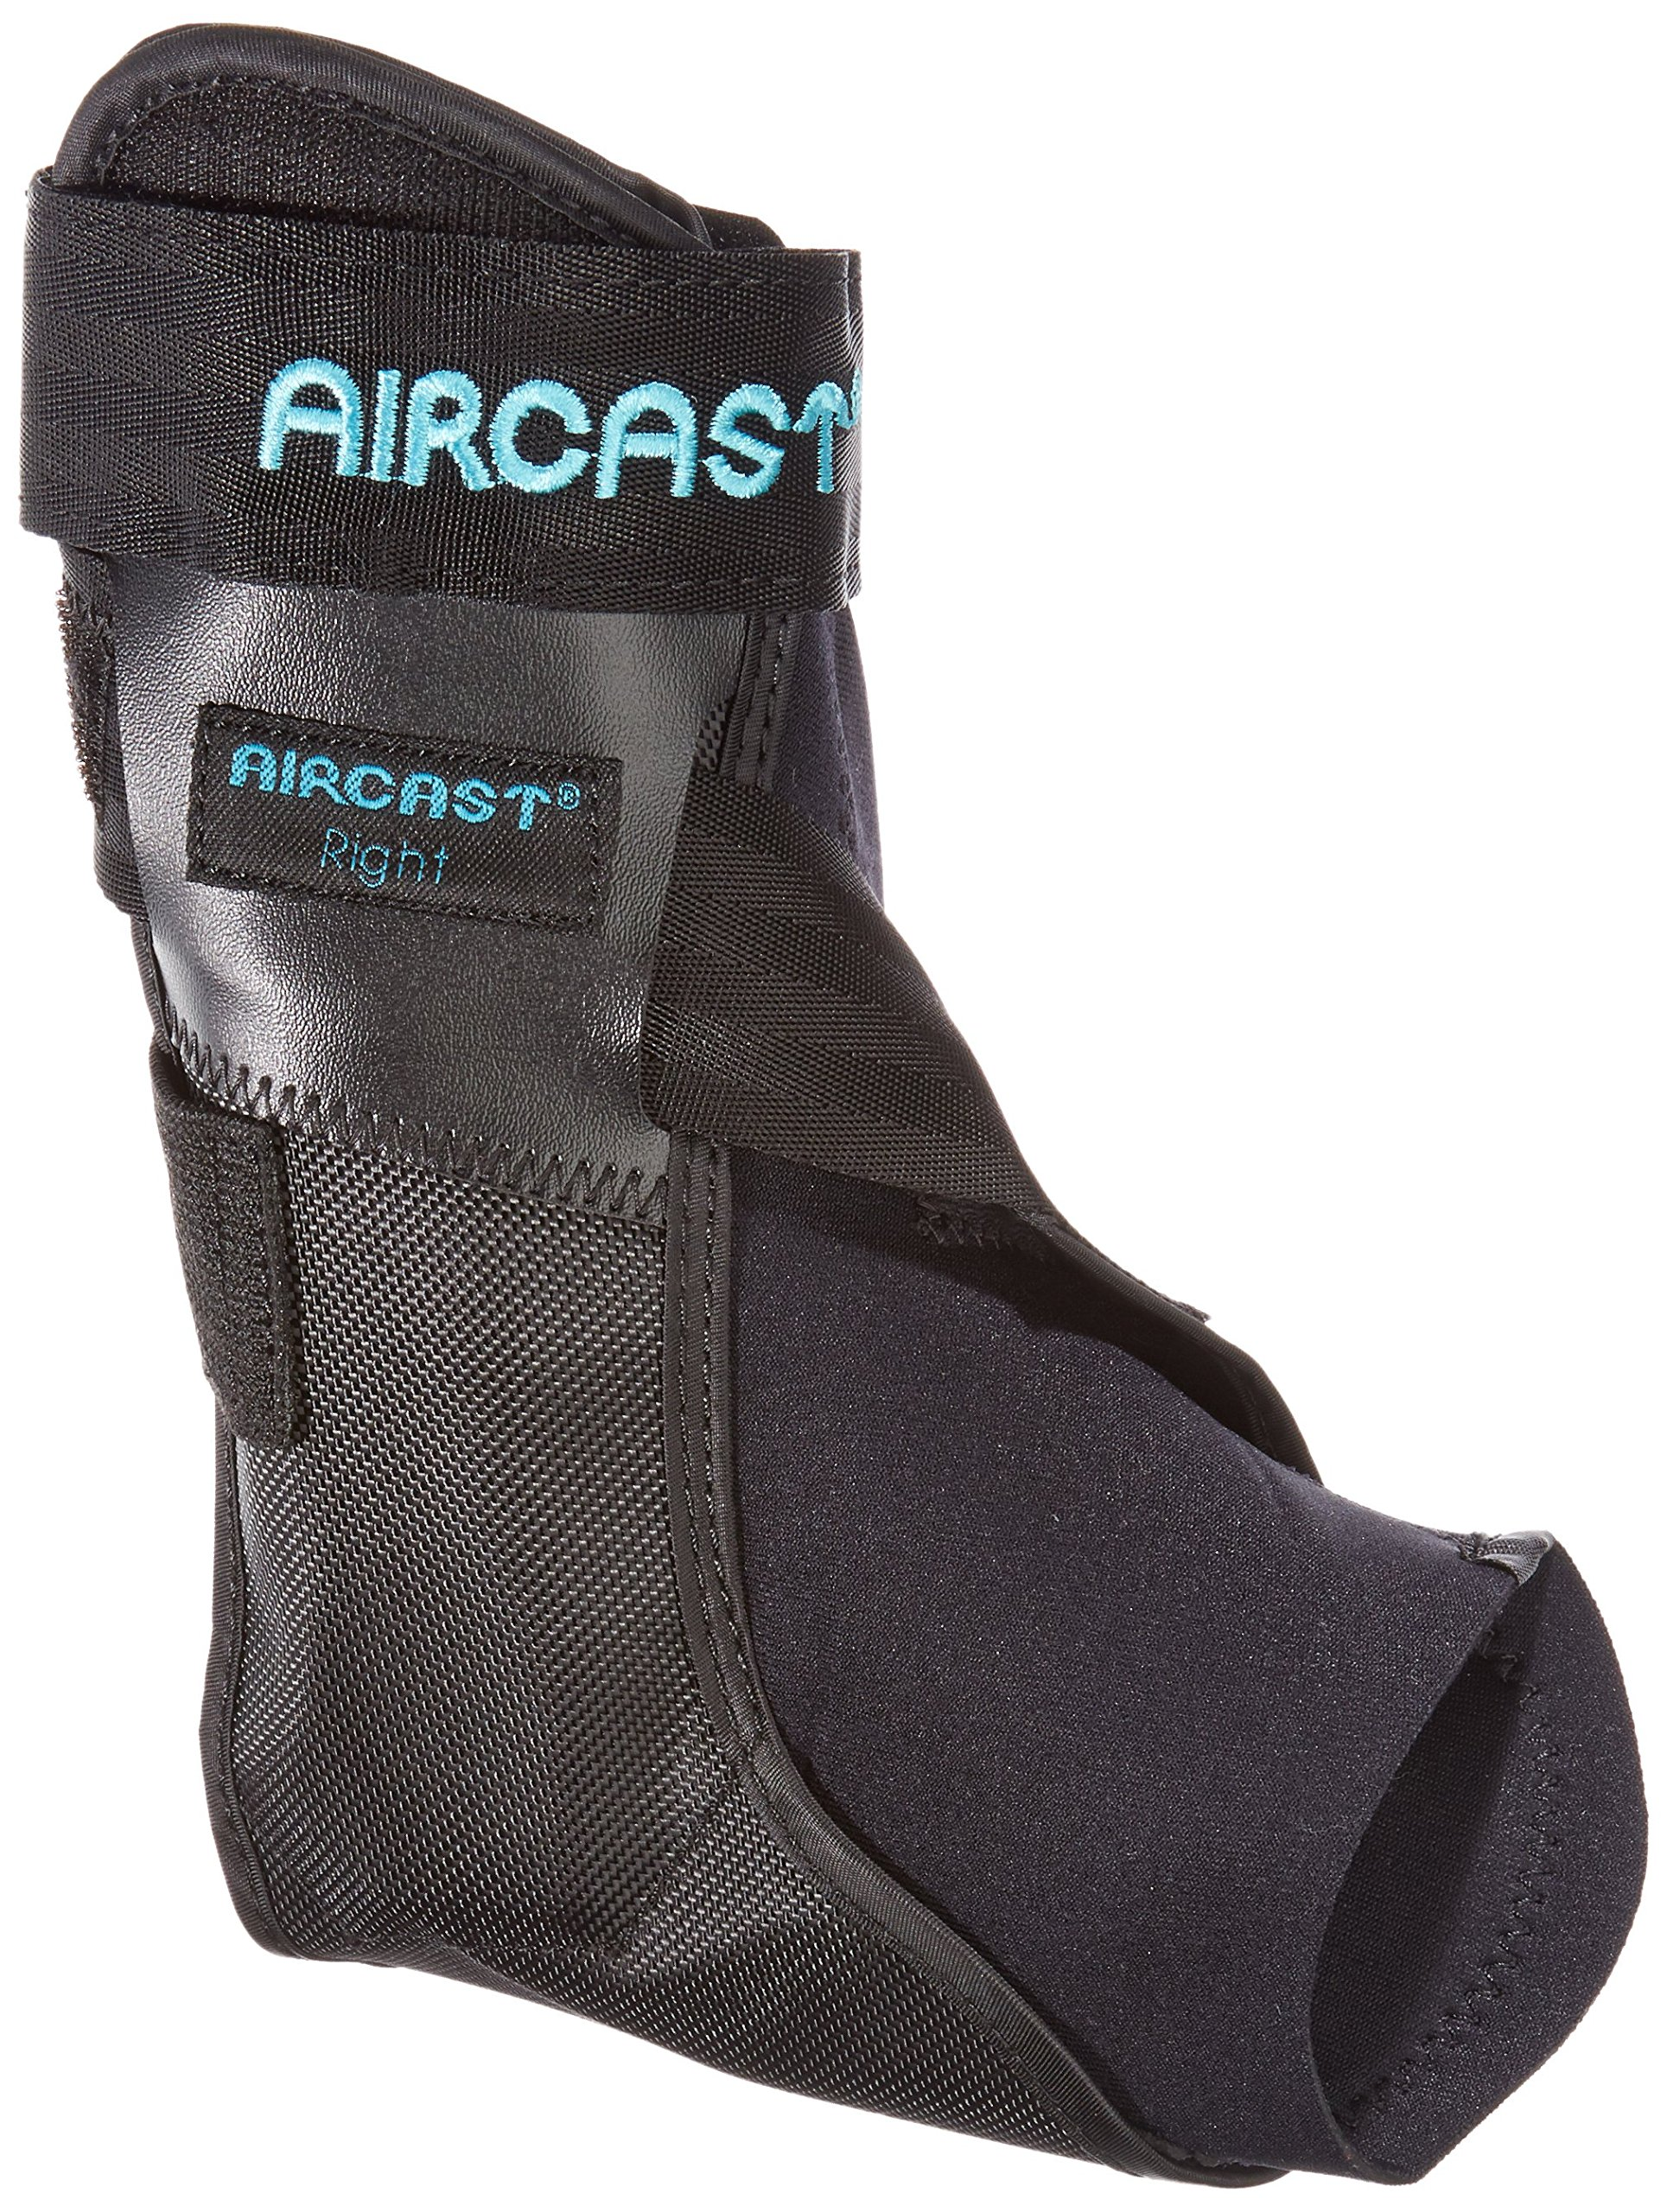 Aircast 02PMR Airlift PTTD Ankle Brace, Right, Medium